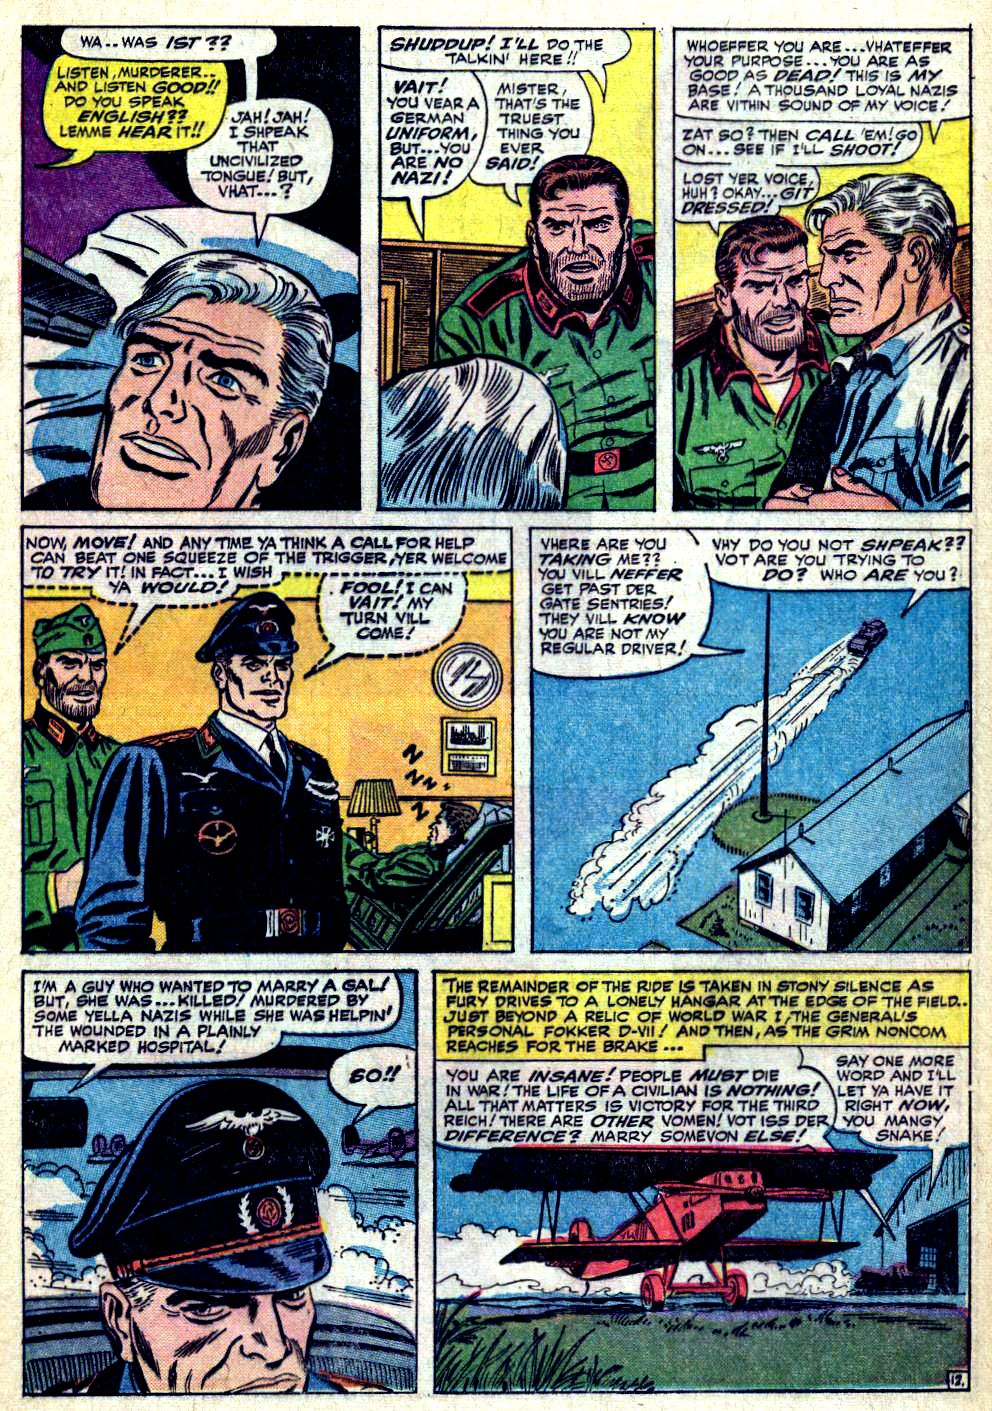 Read online Sgt. Fury comic -  Issue #19 - 17